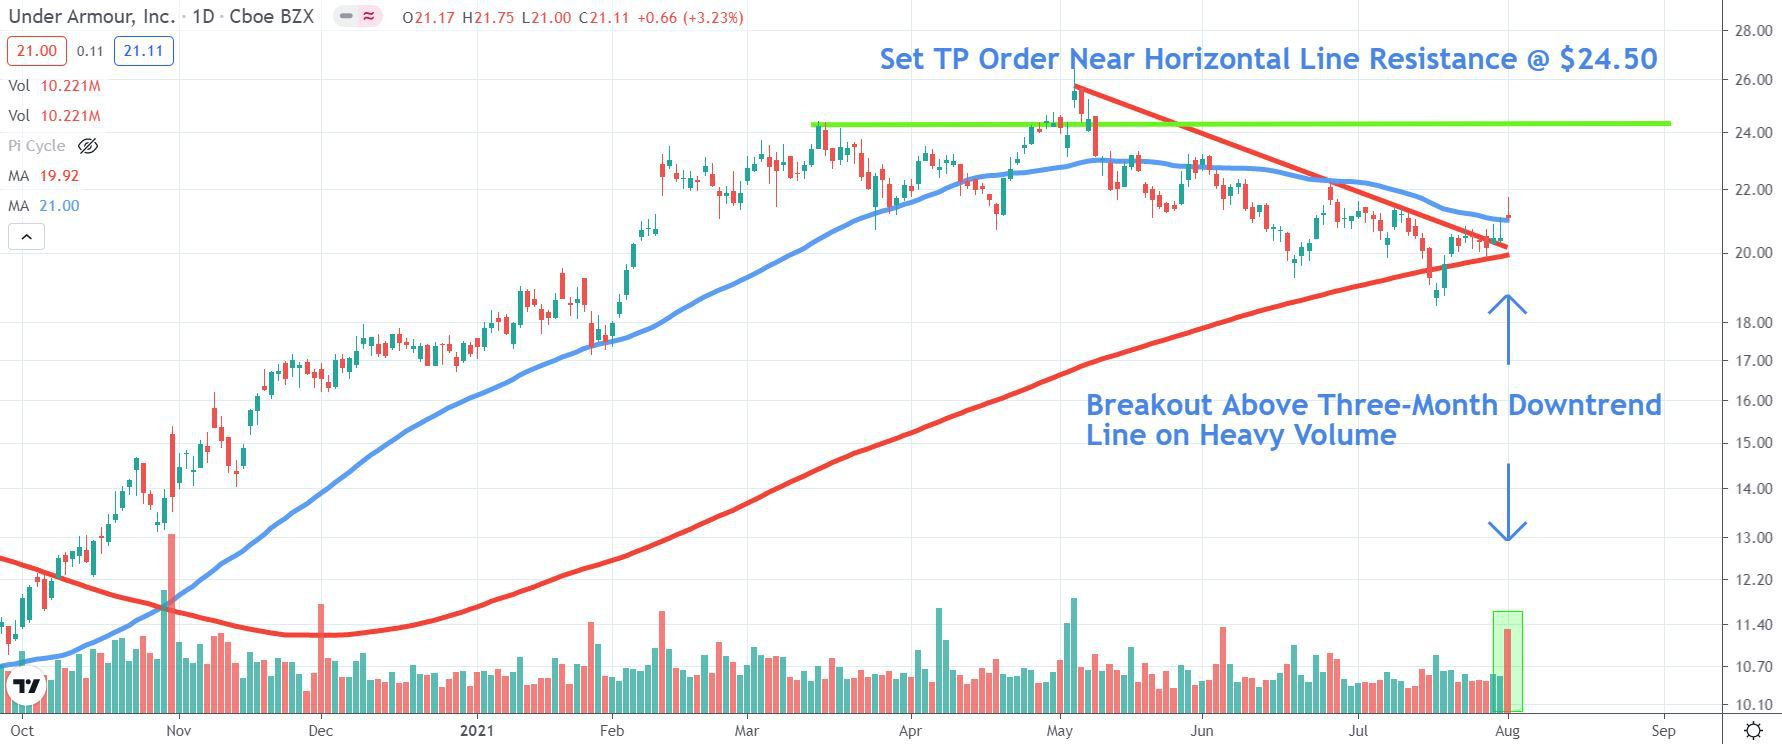 Chart depicting the share price of Under Armour, Inc. (UAA)